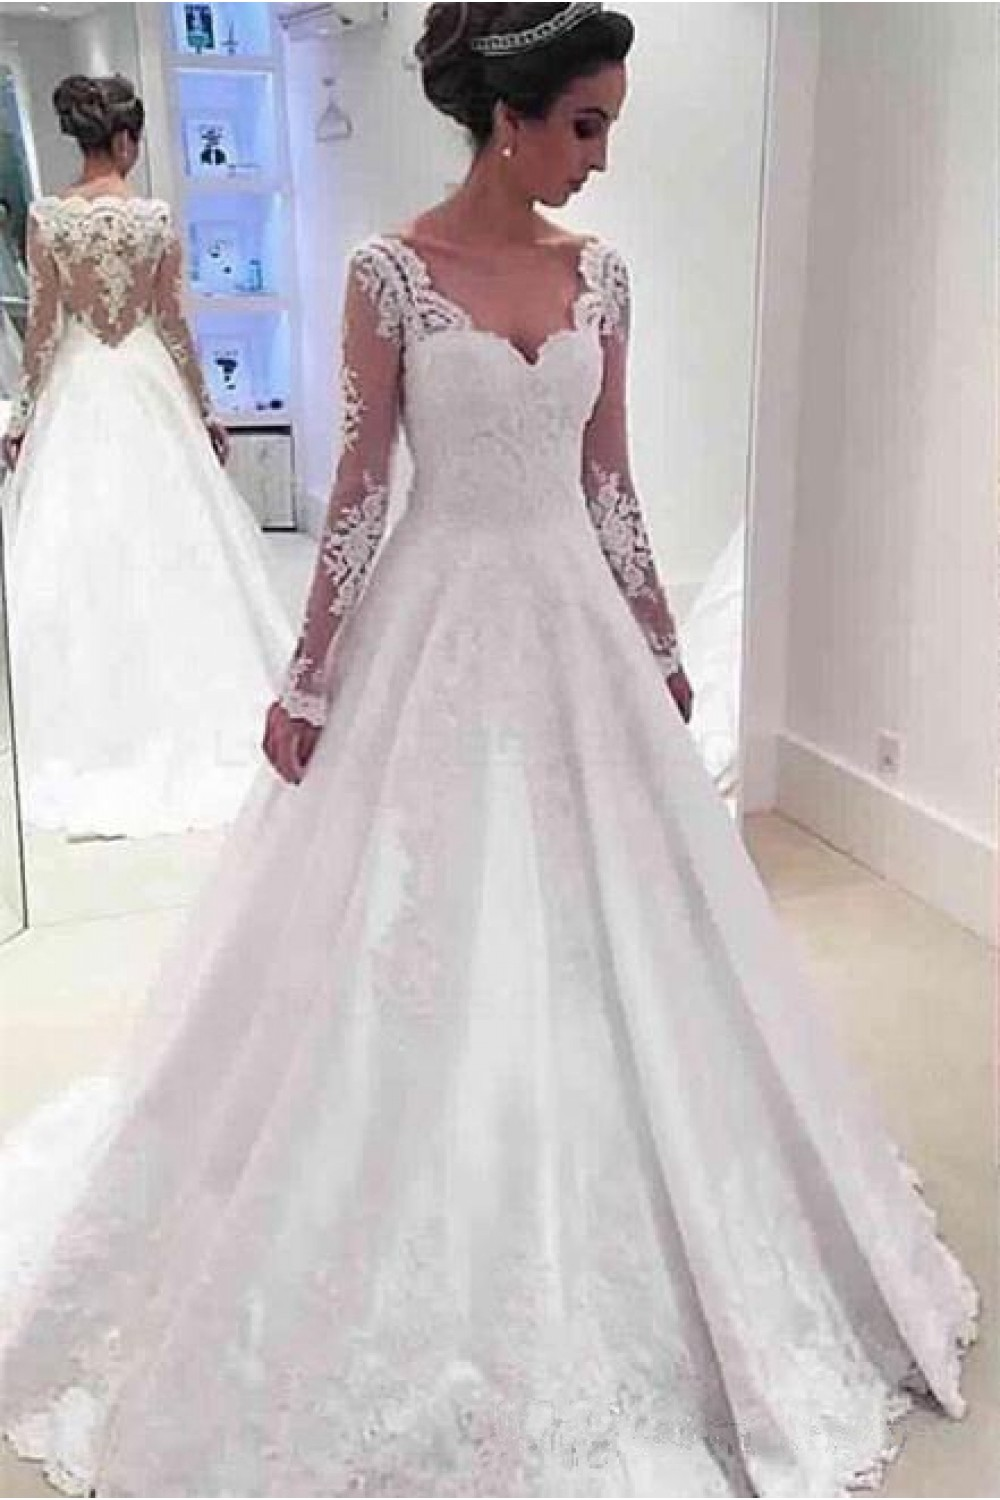 dresses with sleeves for wedding a line sleeves lace wedding dresses bridal gowns 3030273 3747